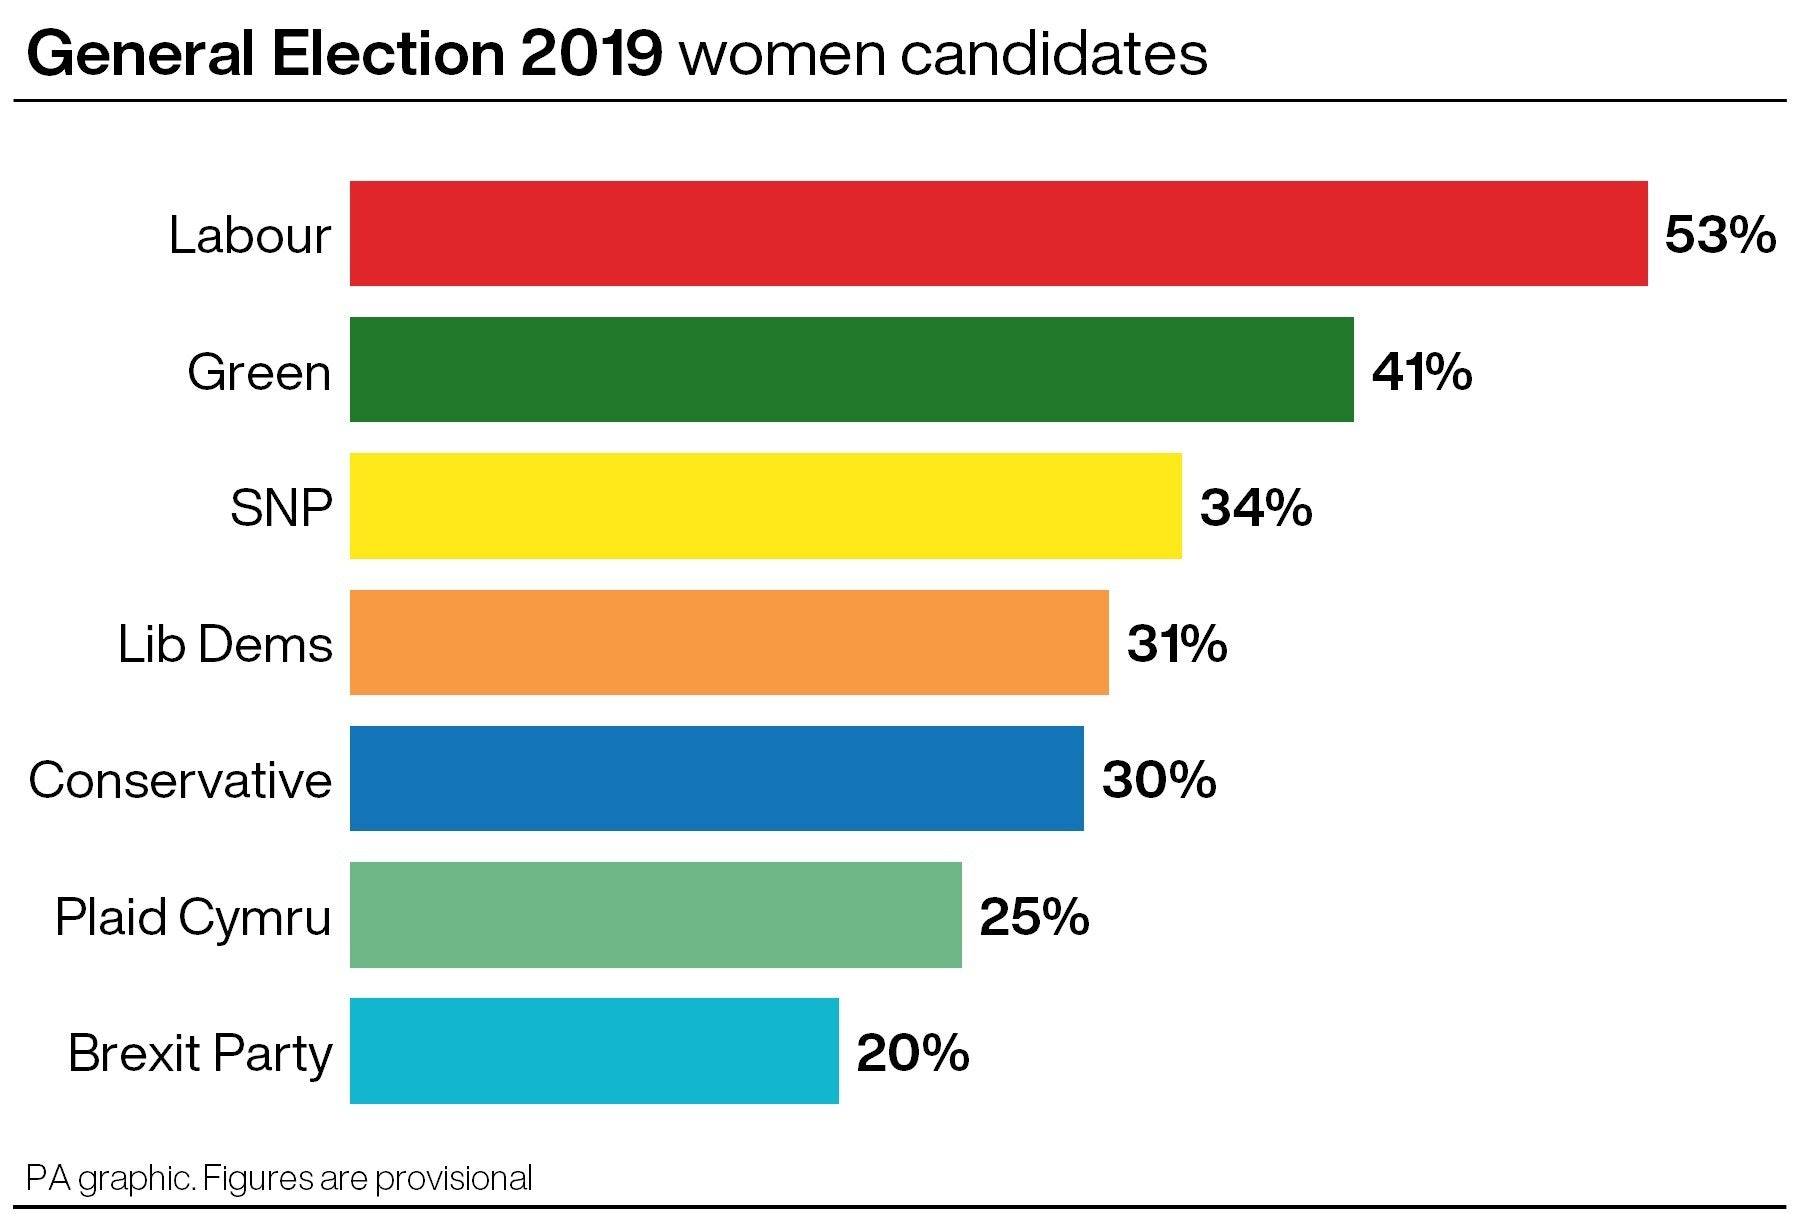 Women candidates at the 2019 General Election